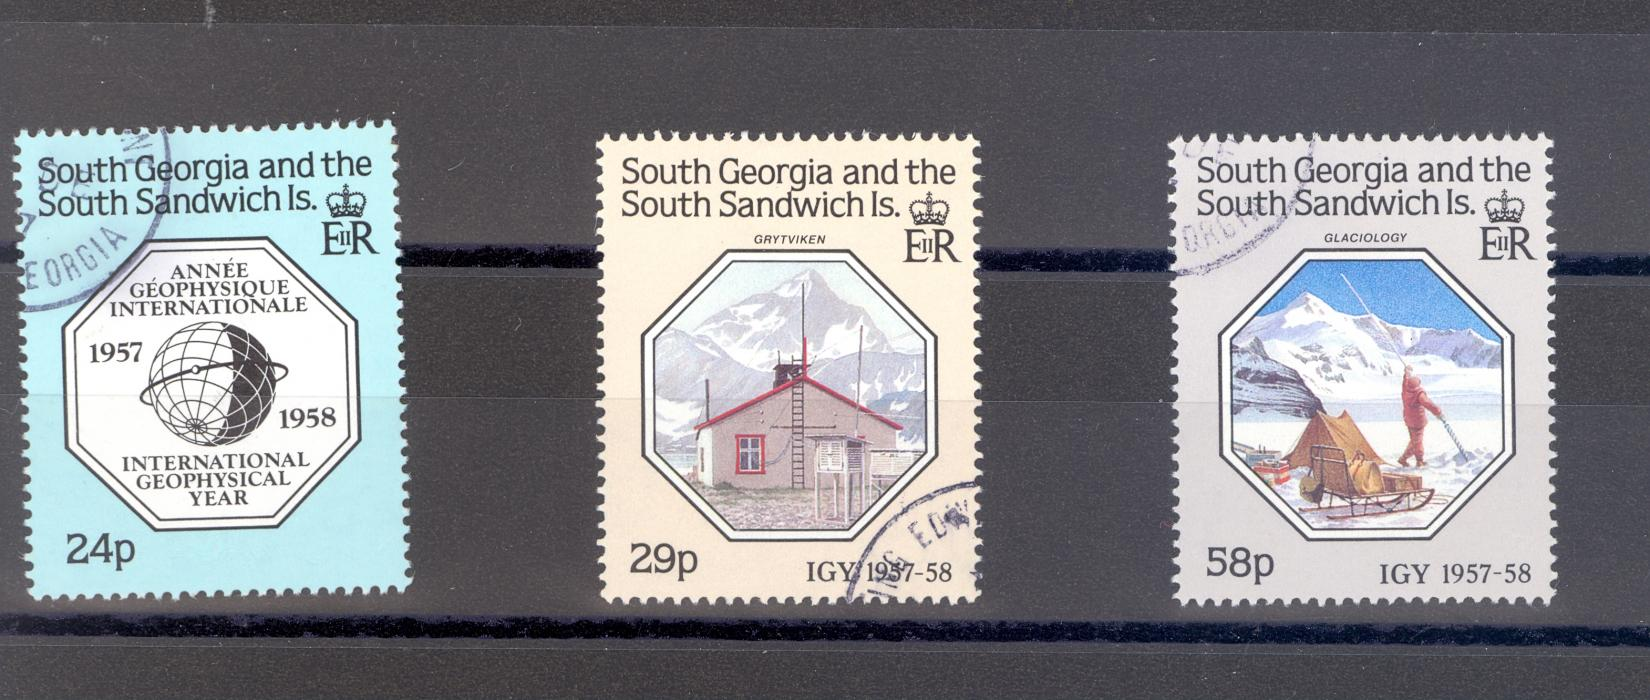 South Georgia SG 176-8 1987 Anniversary of Geophysical Year Used